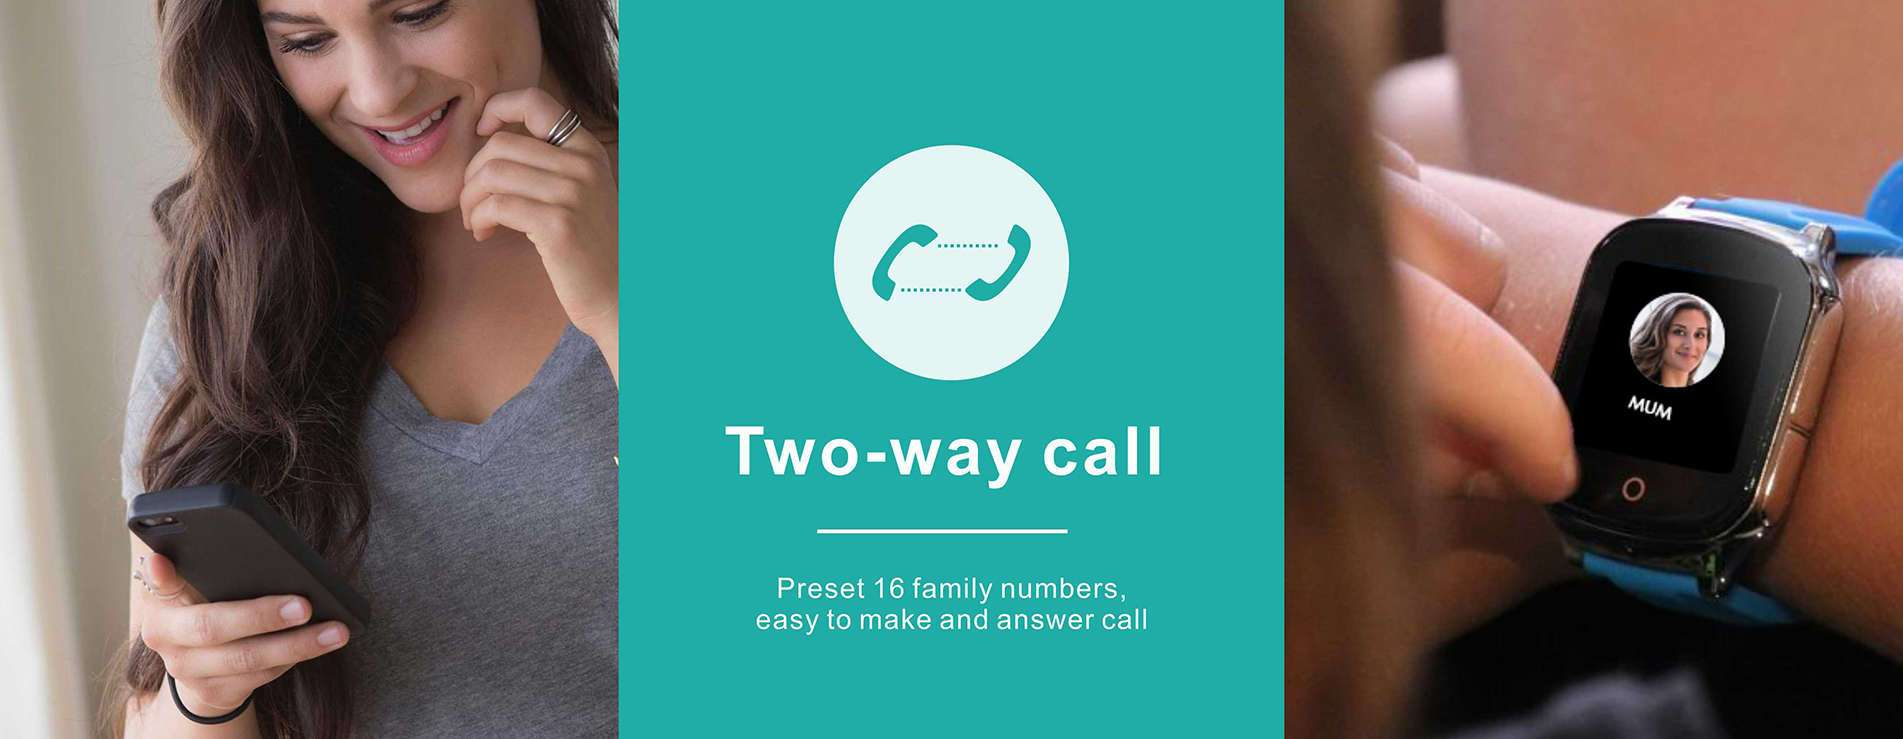 two way call